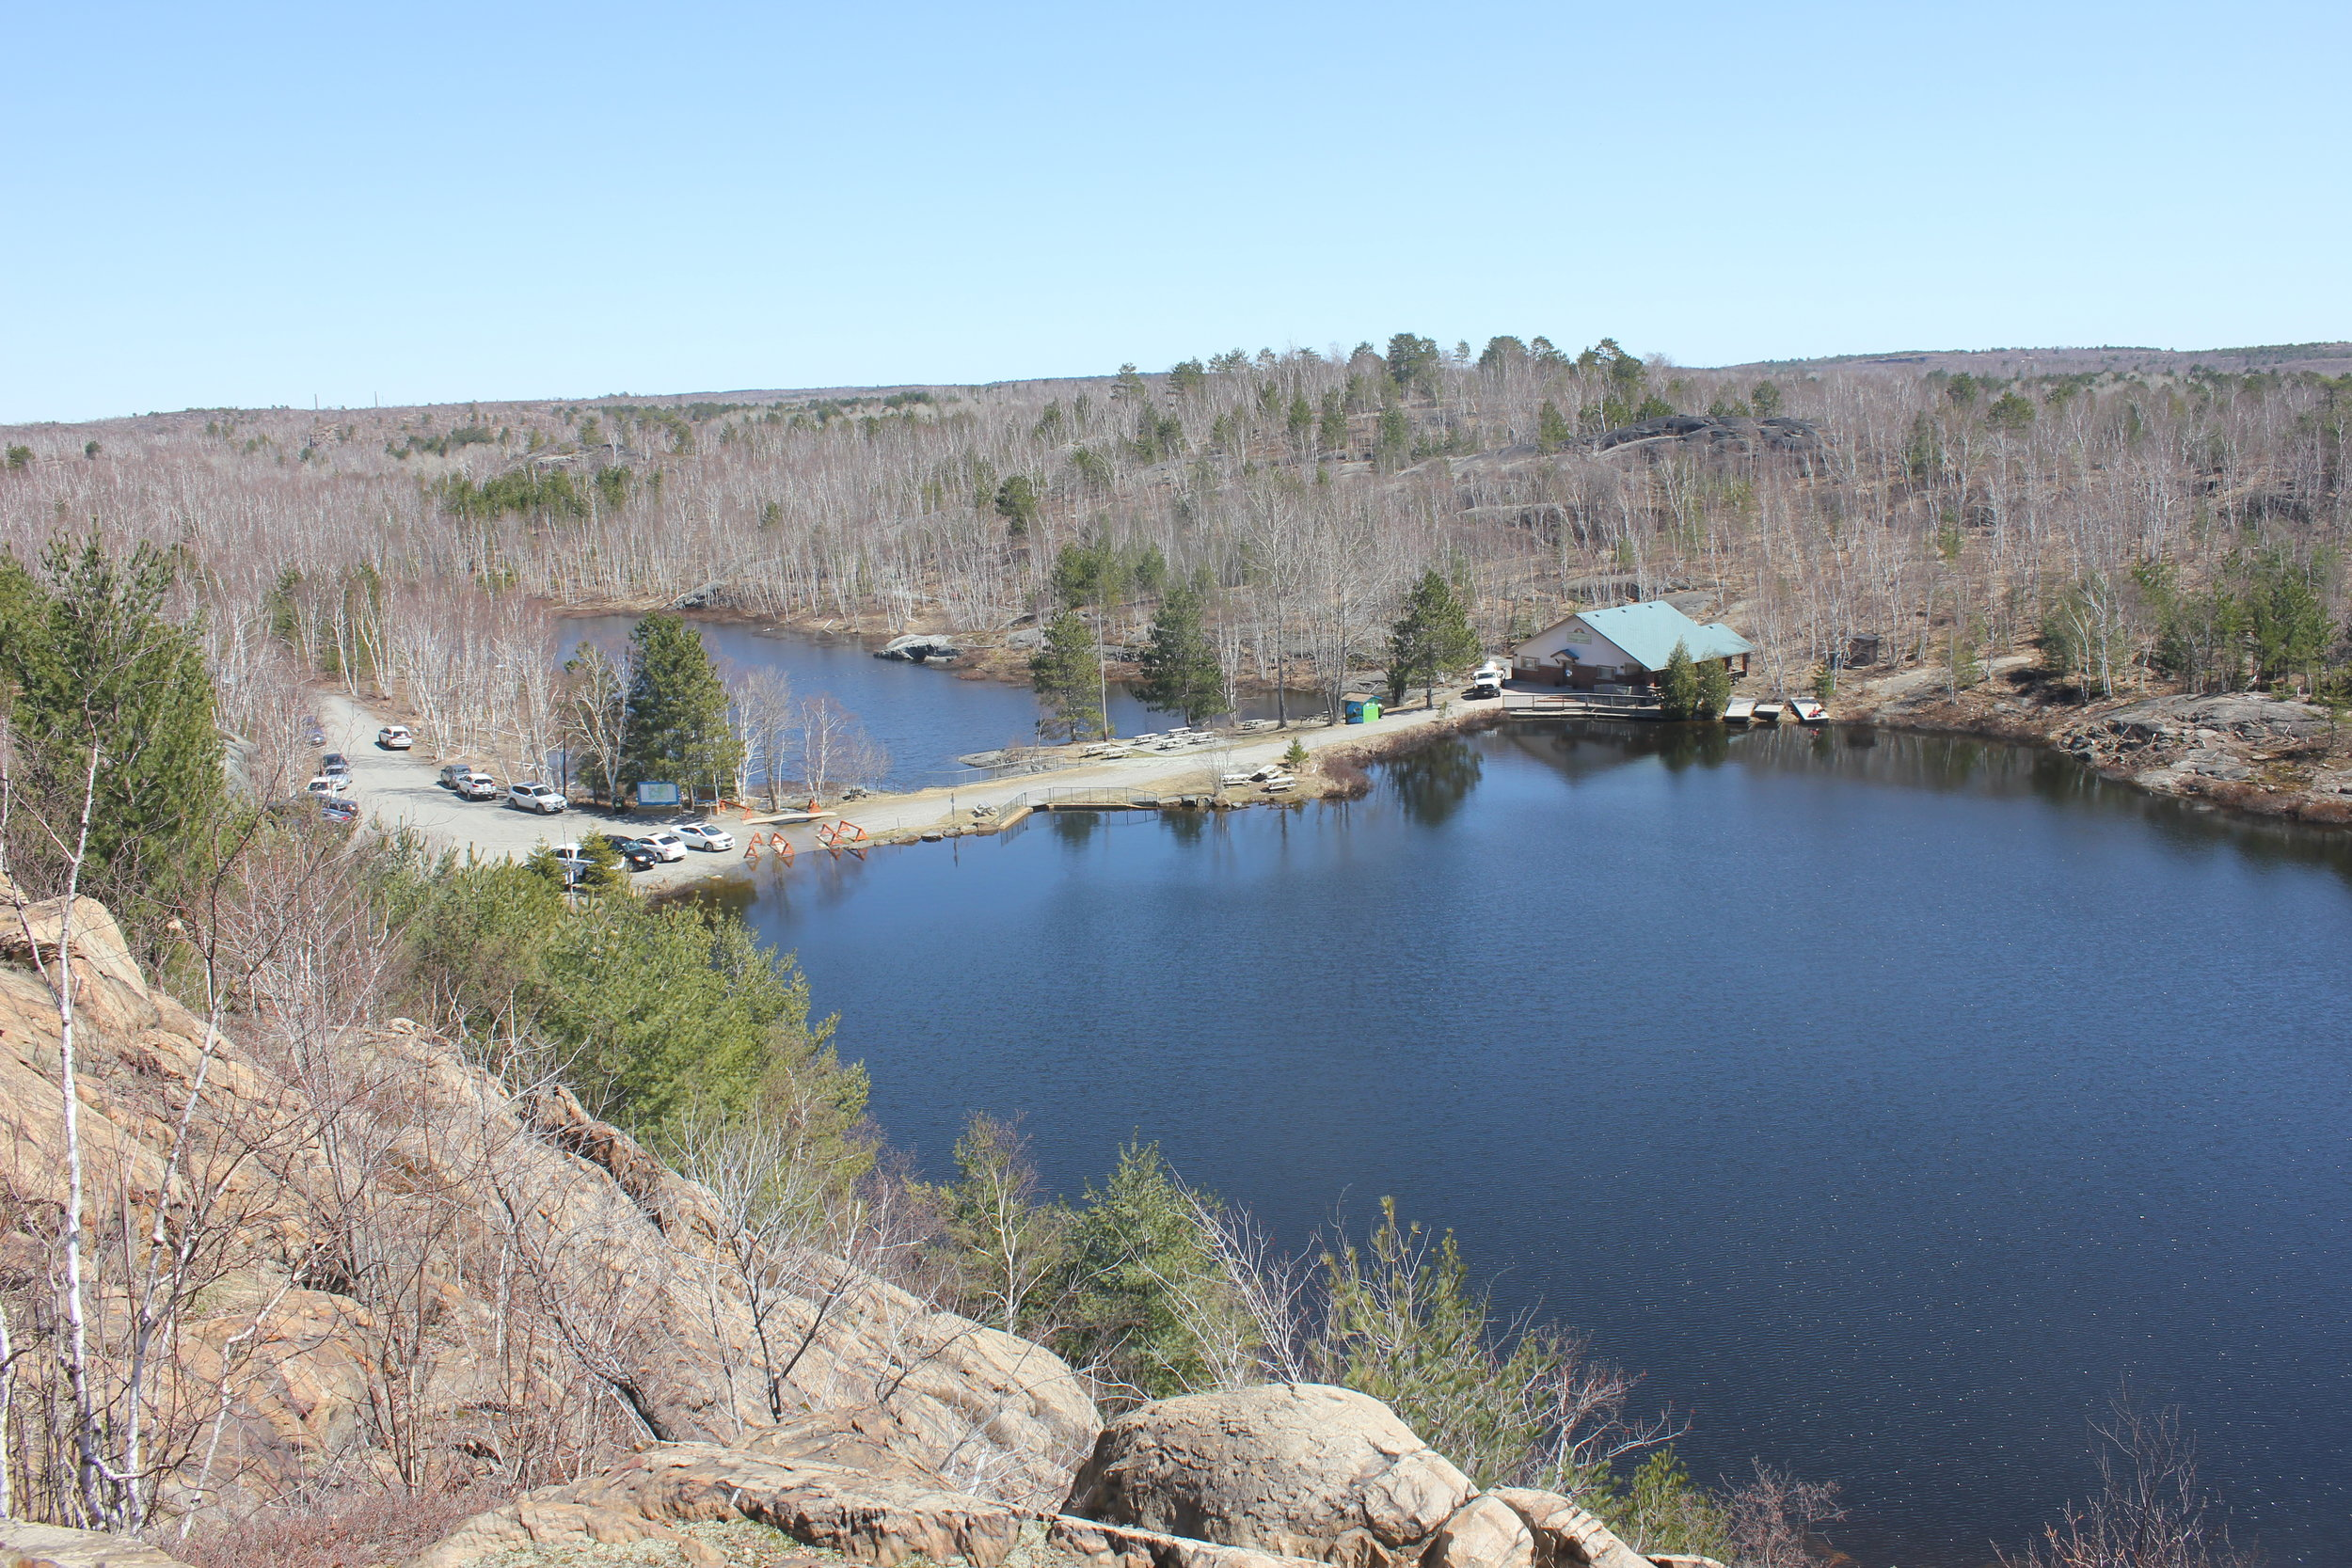 A bird's-eye view of the Lake Laurentian Conservation Area